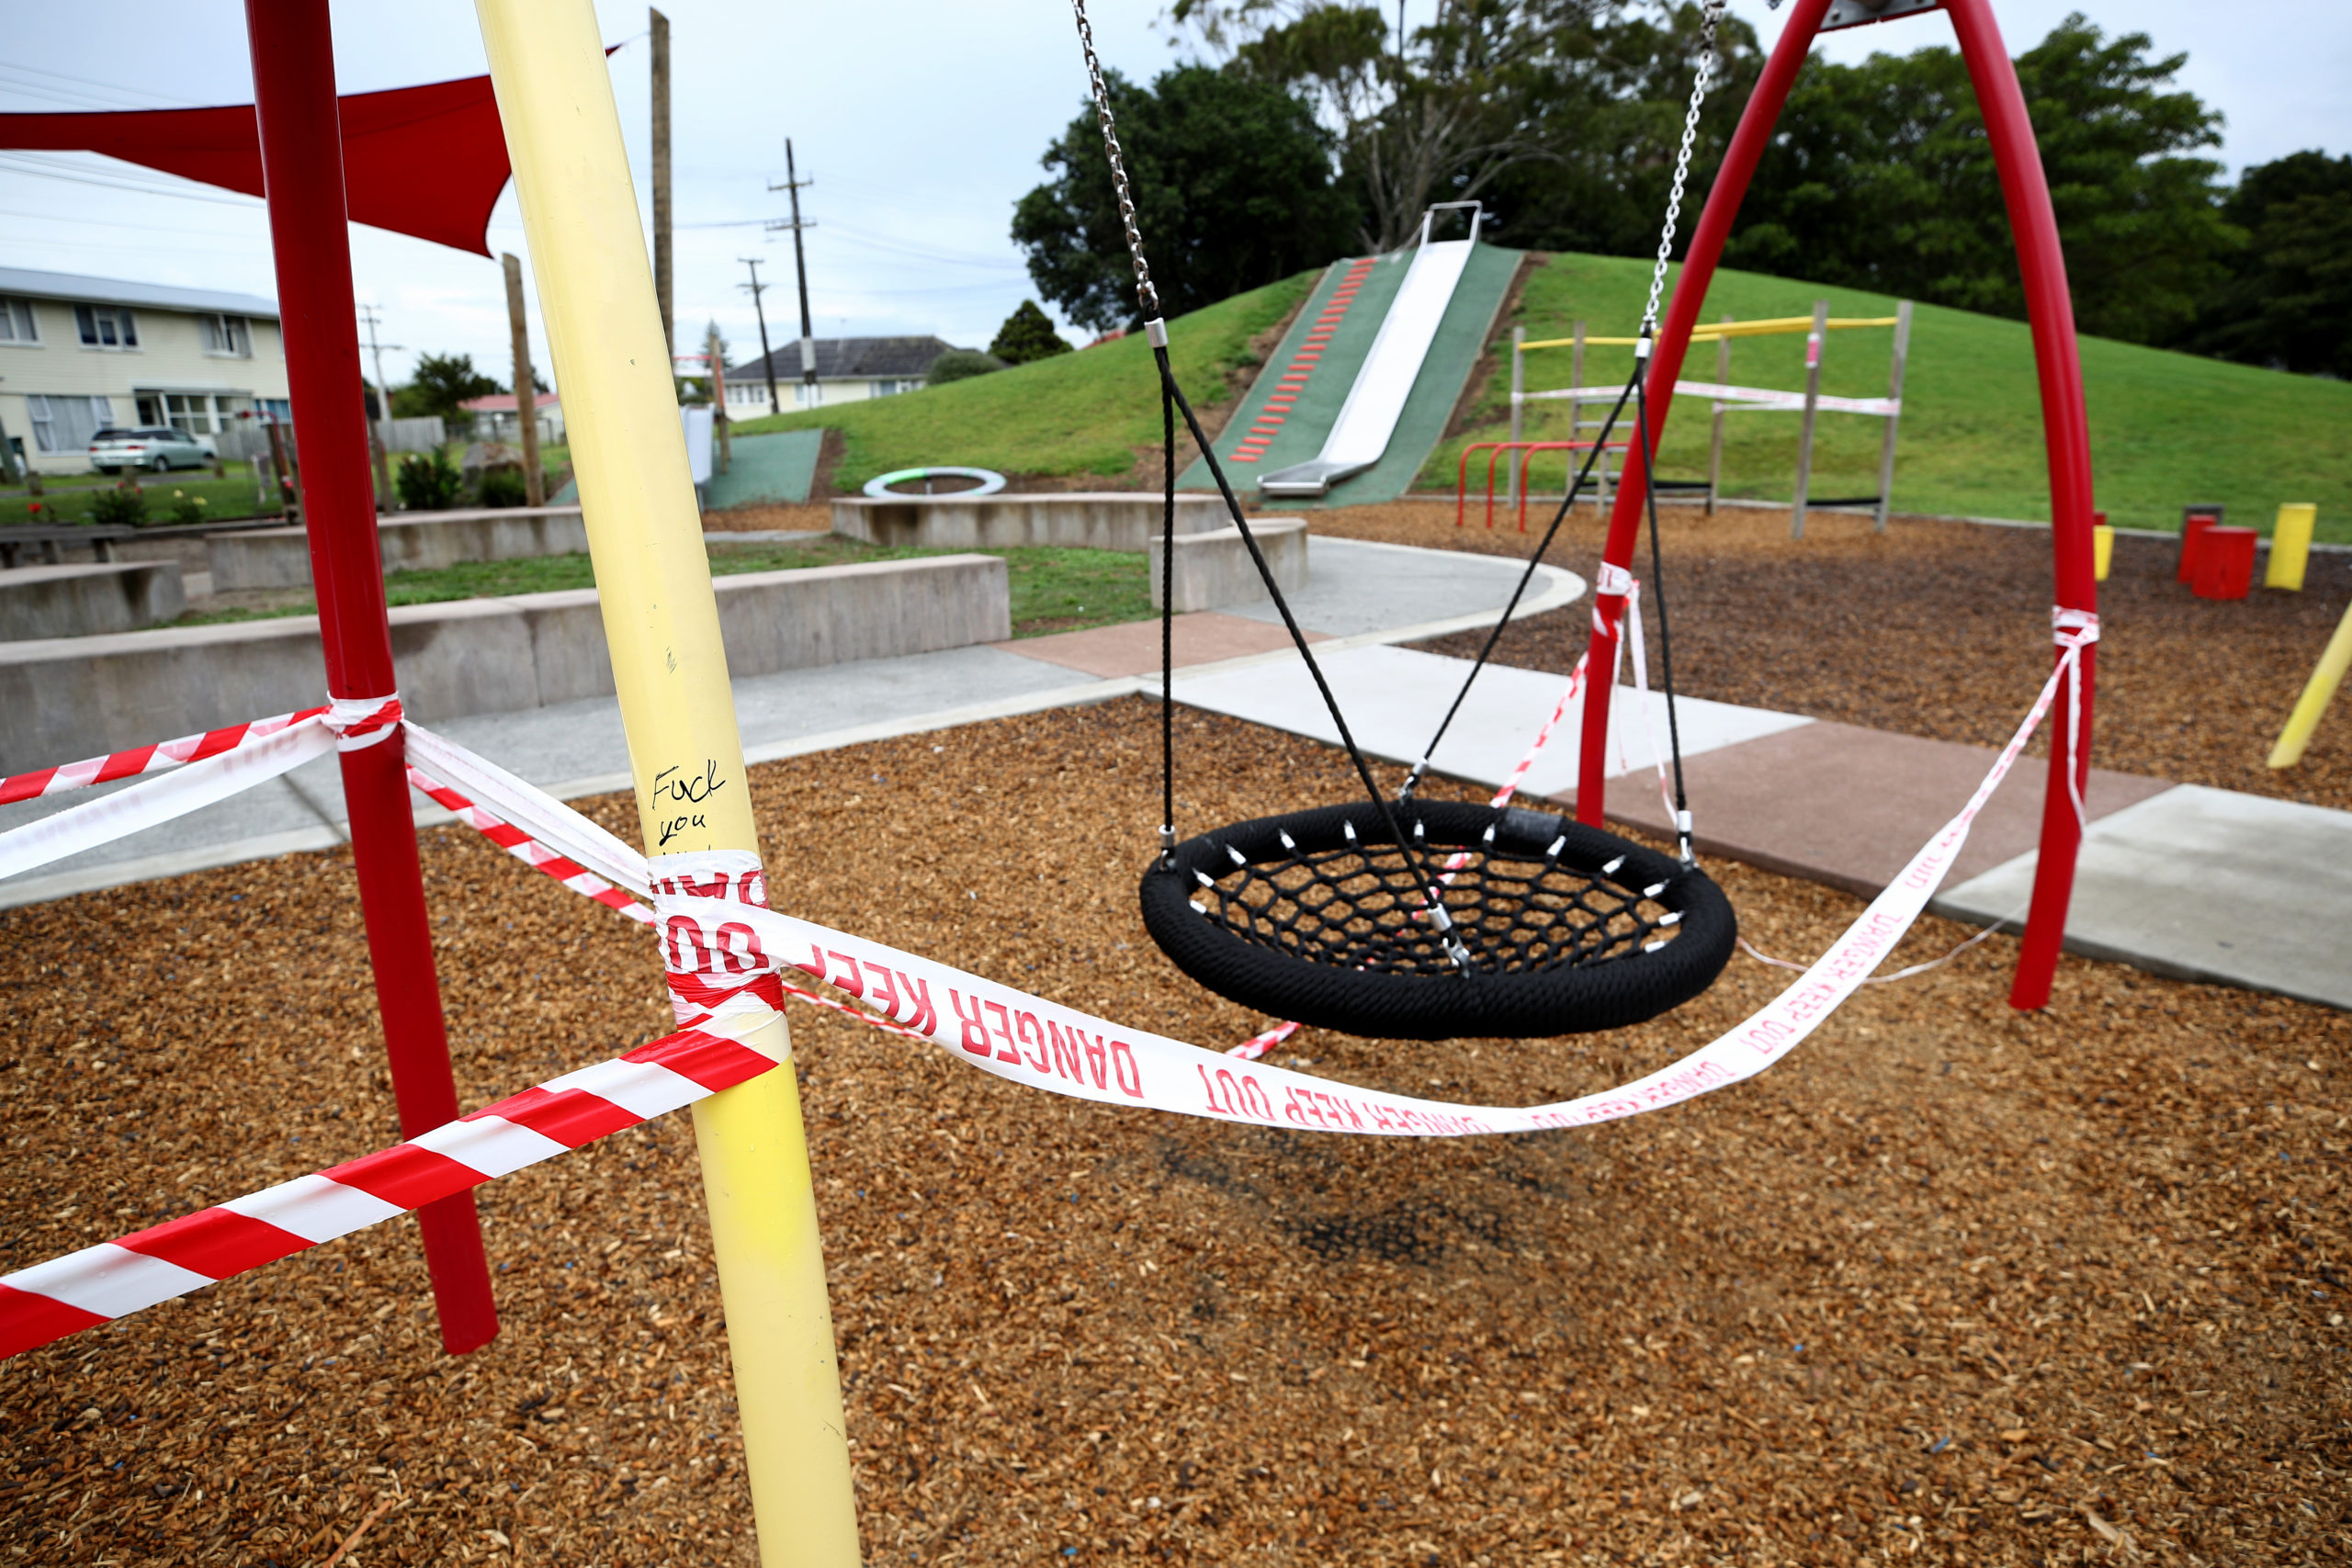 A childs playground is shown closed to prevent the spread of COVID-19 in Otara in Auckland, New Zealand. (Photo by Phil Walter/Getty Images)